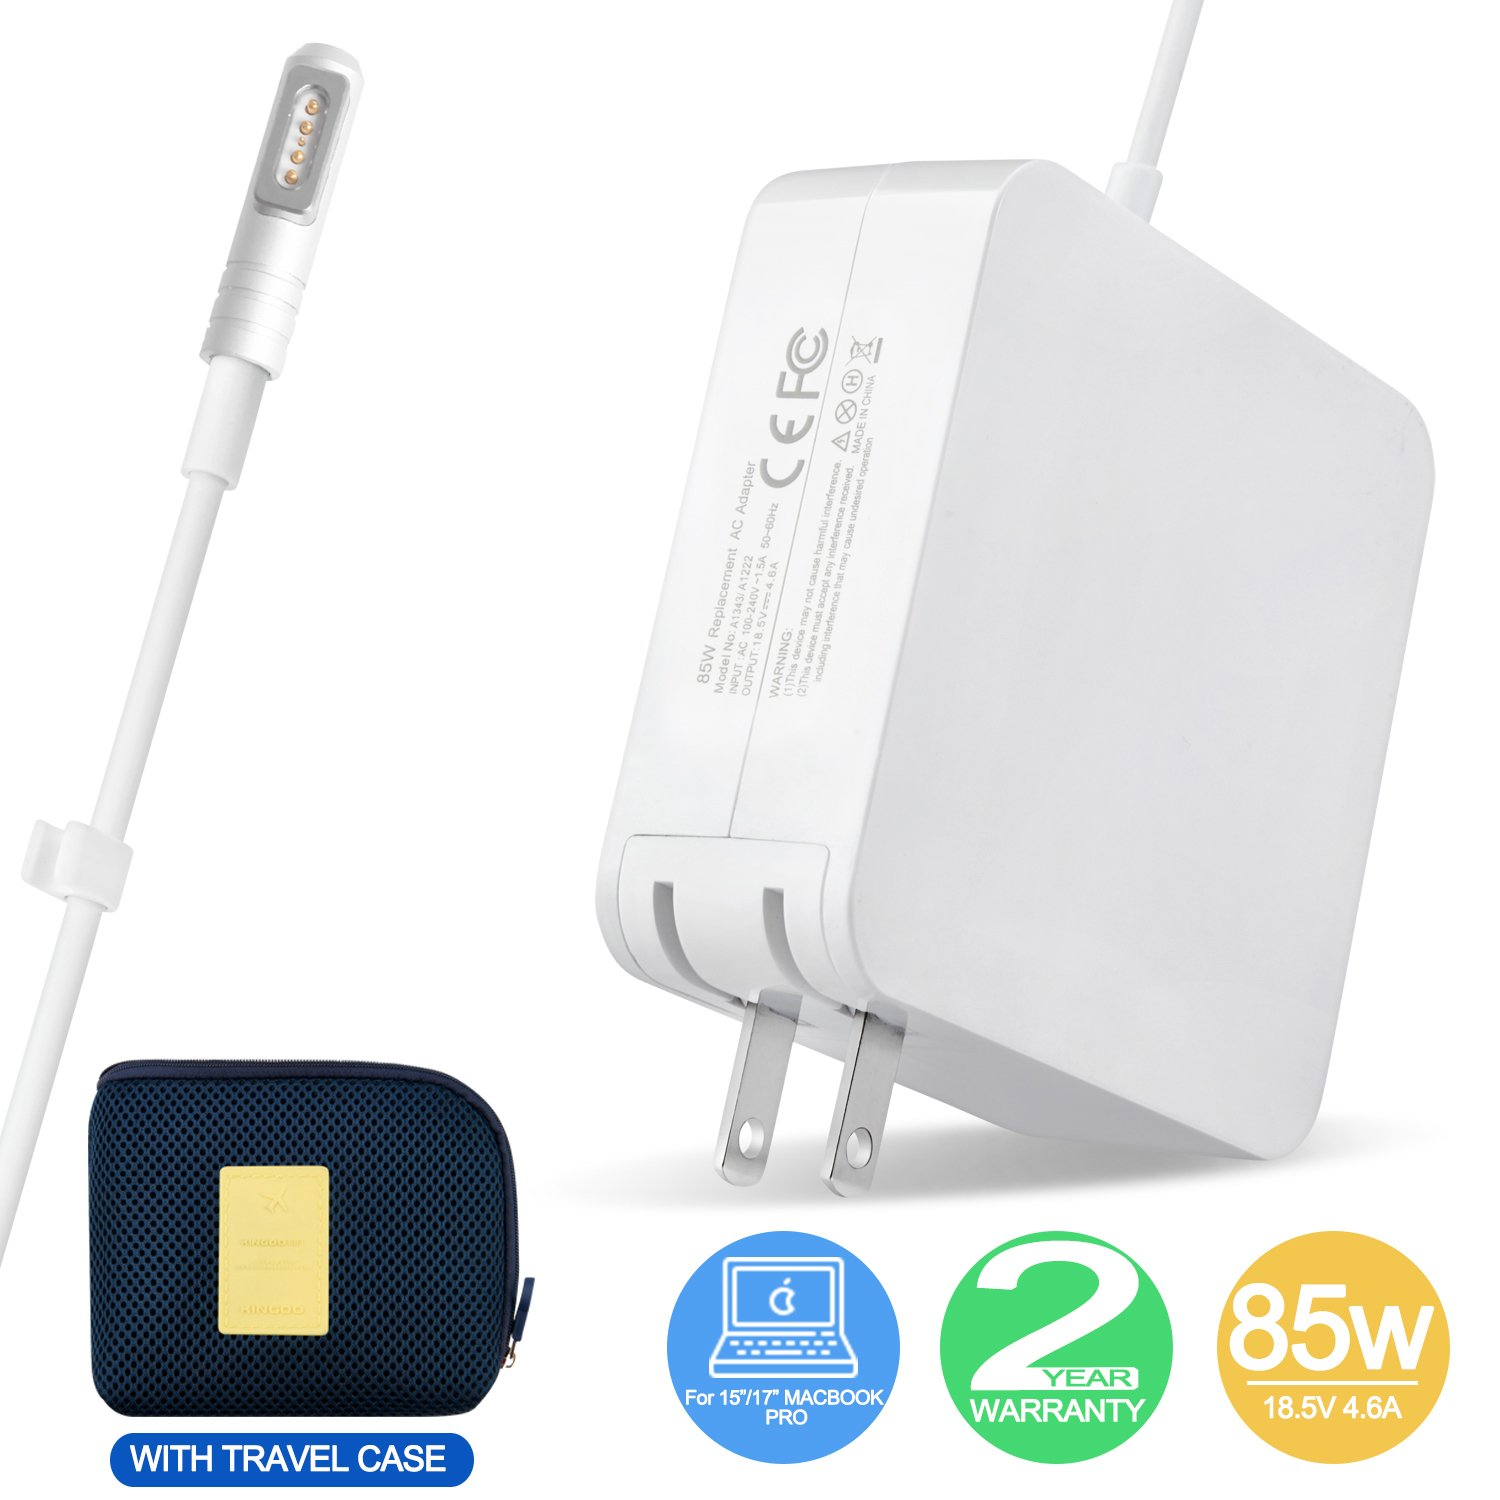 Macbook Pro charger, 85W MagSafe Power Adapter with MagSafe 1 (L-Tip) Style Connector for MacBook Pro 13-inch 15-inch and 17-inch Including a Travel Carrying Pouch